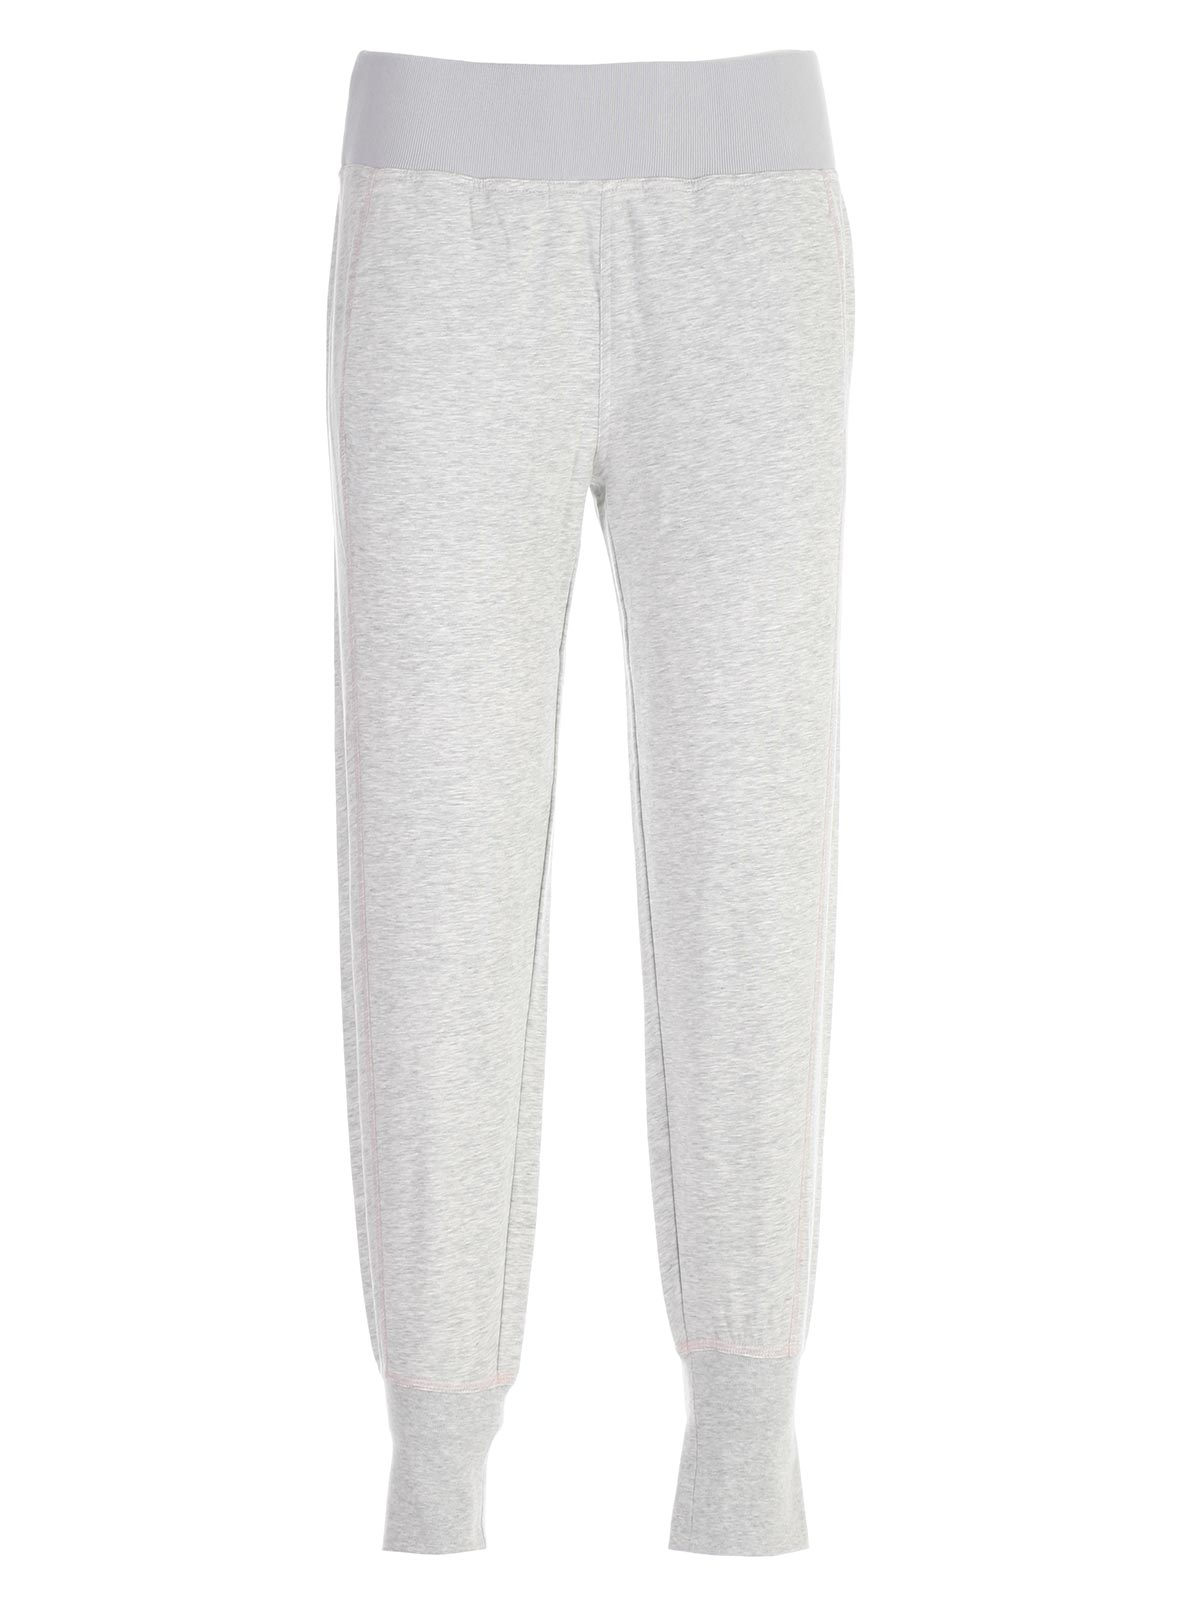 Picture of Adidas By Stella Mccartney Trousers